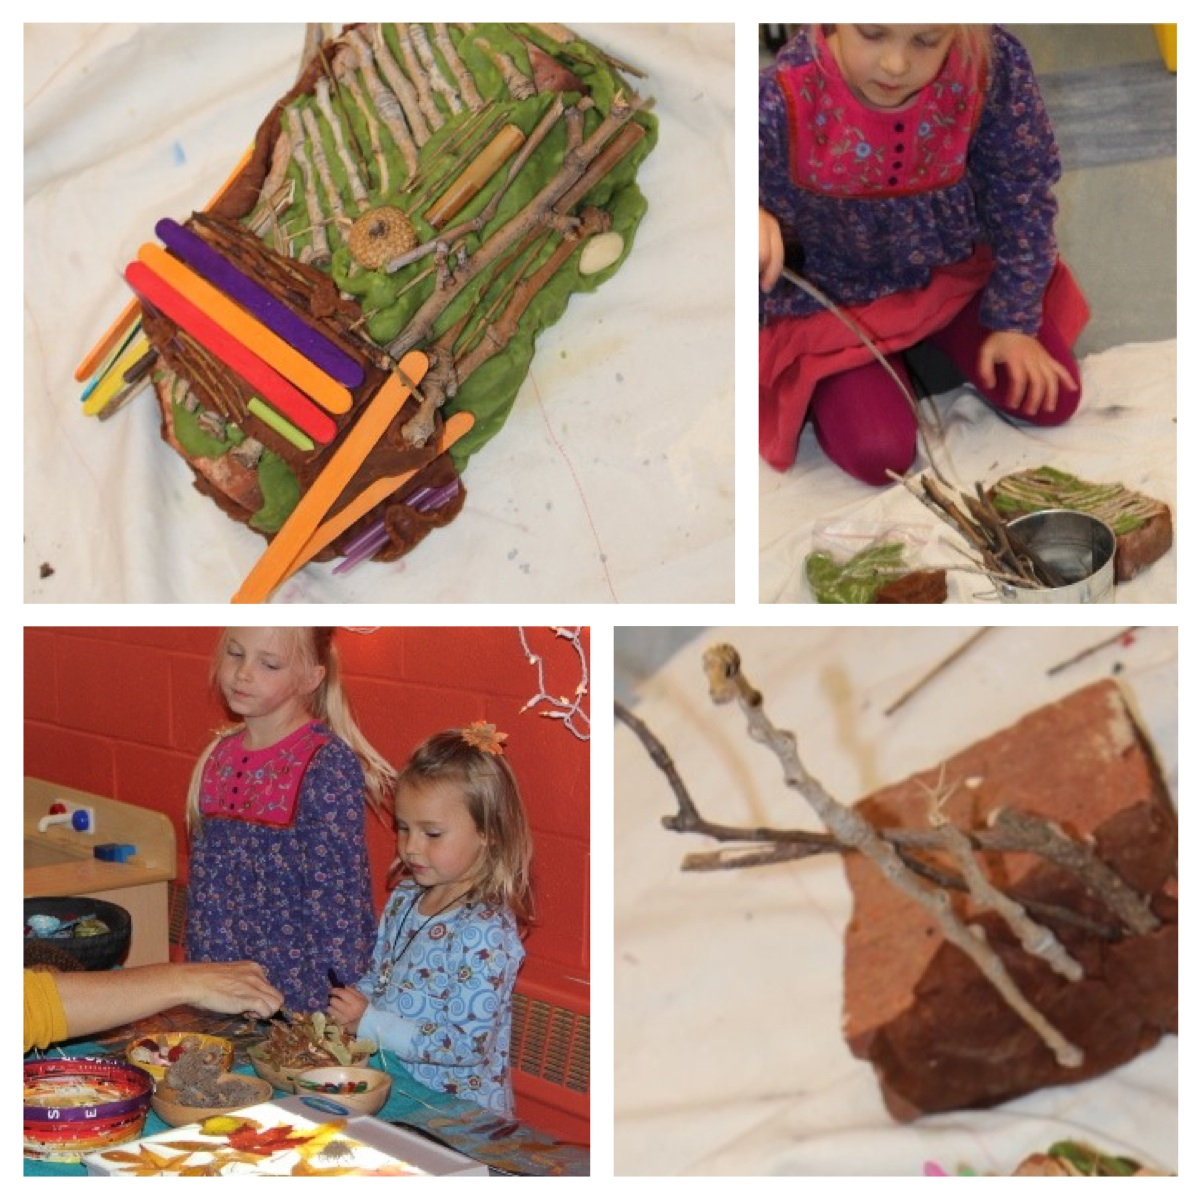 Children begin to build with brick, home made play dough and natural materials of their choice. Little plastic animals enhance story play.